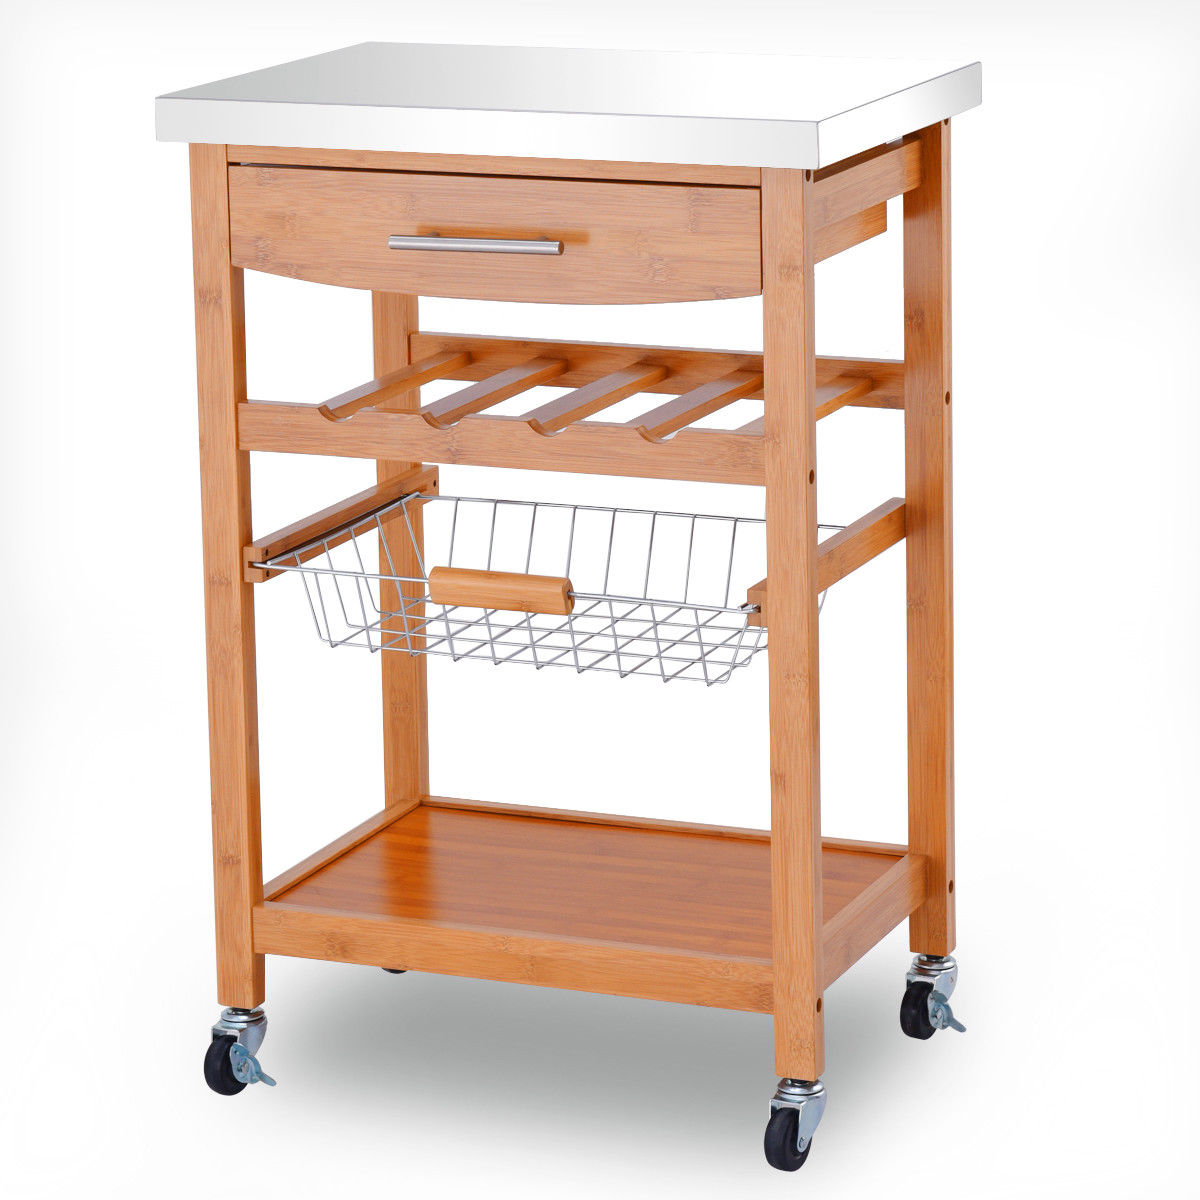 Gymax Bamboo Rolling Kitchen Island Wine Rack Storage Trolley Cart Stainless Steel Top